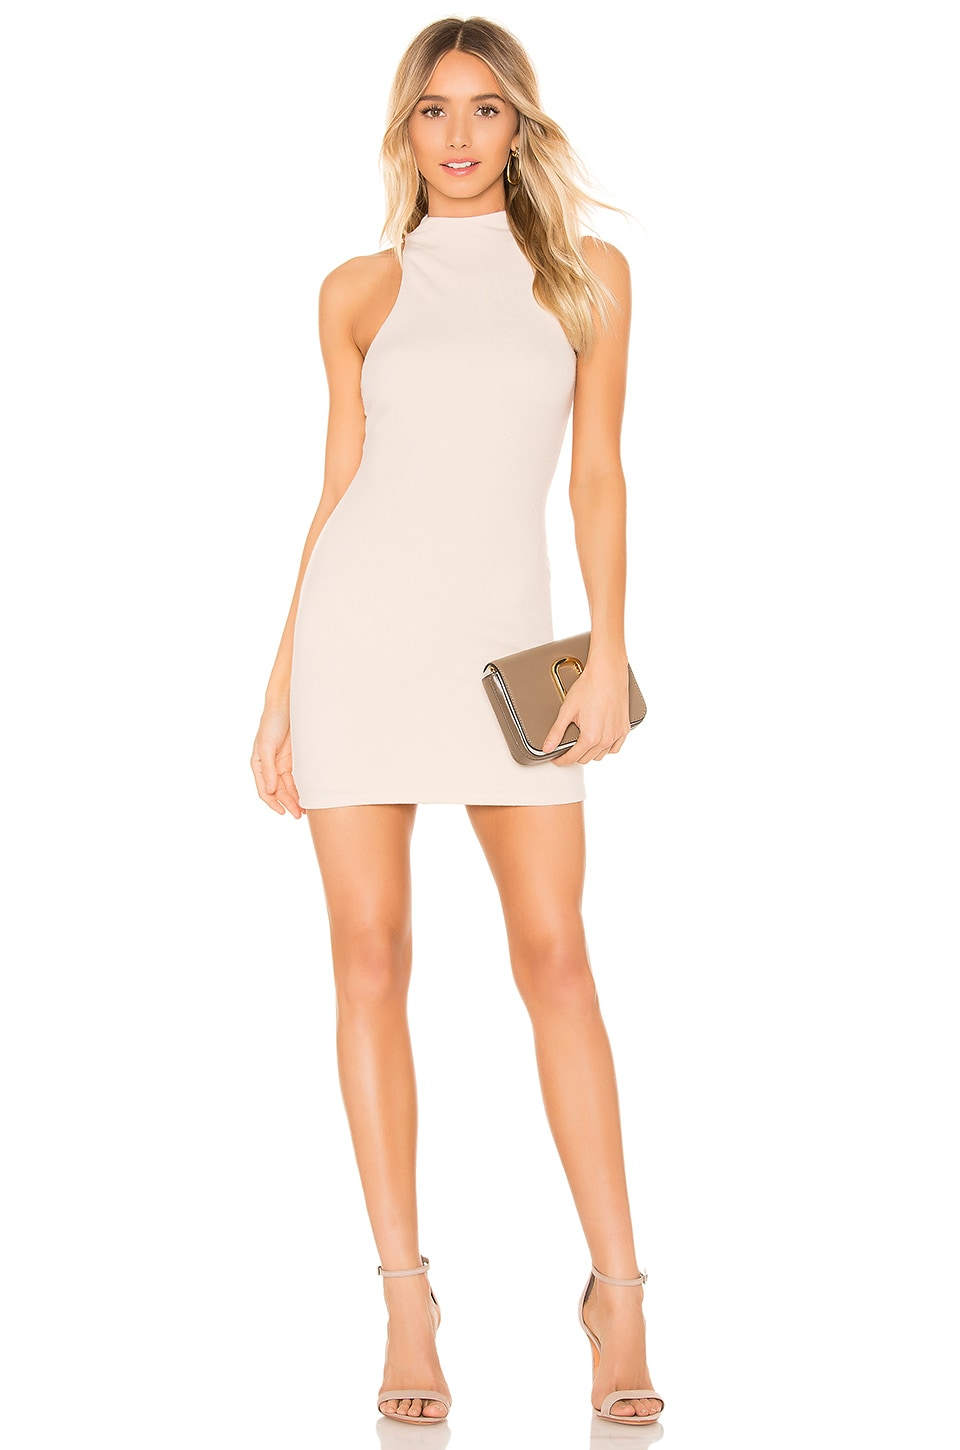 Privacy Please Alden Mini Dress in Ivory